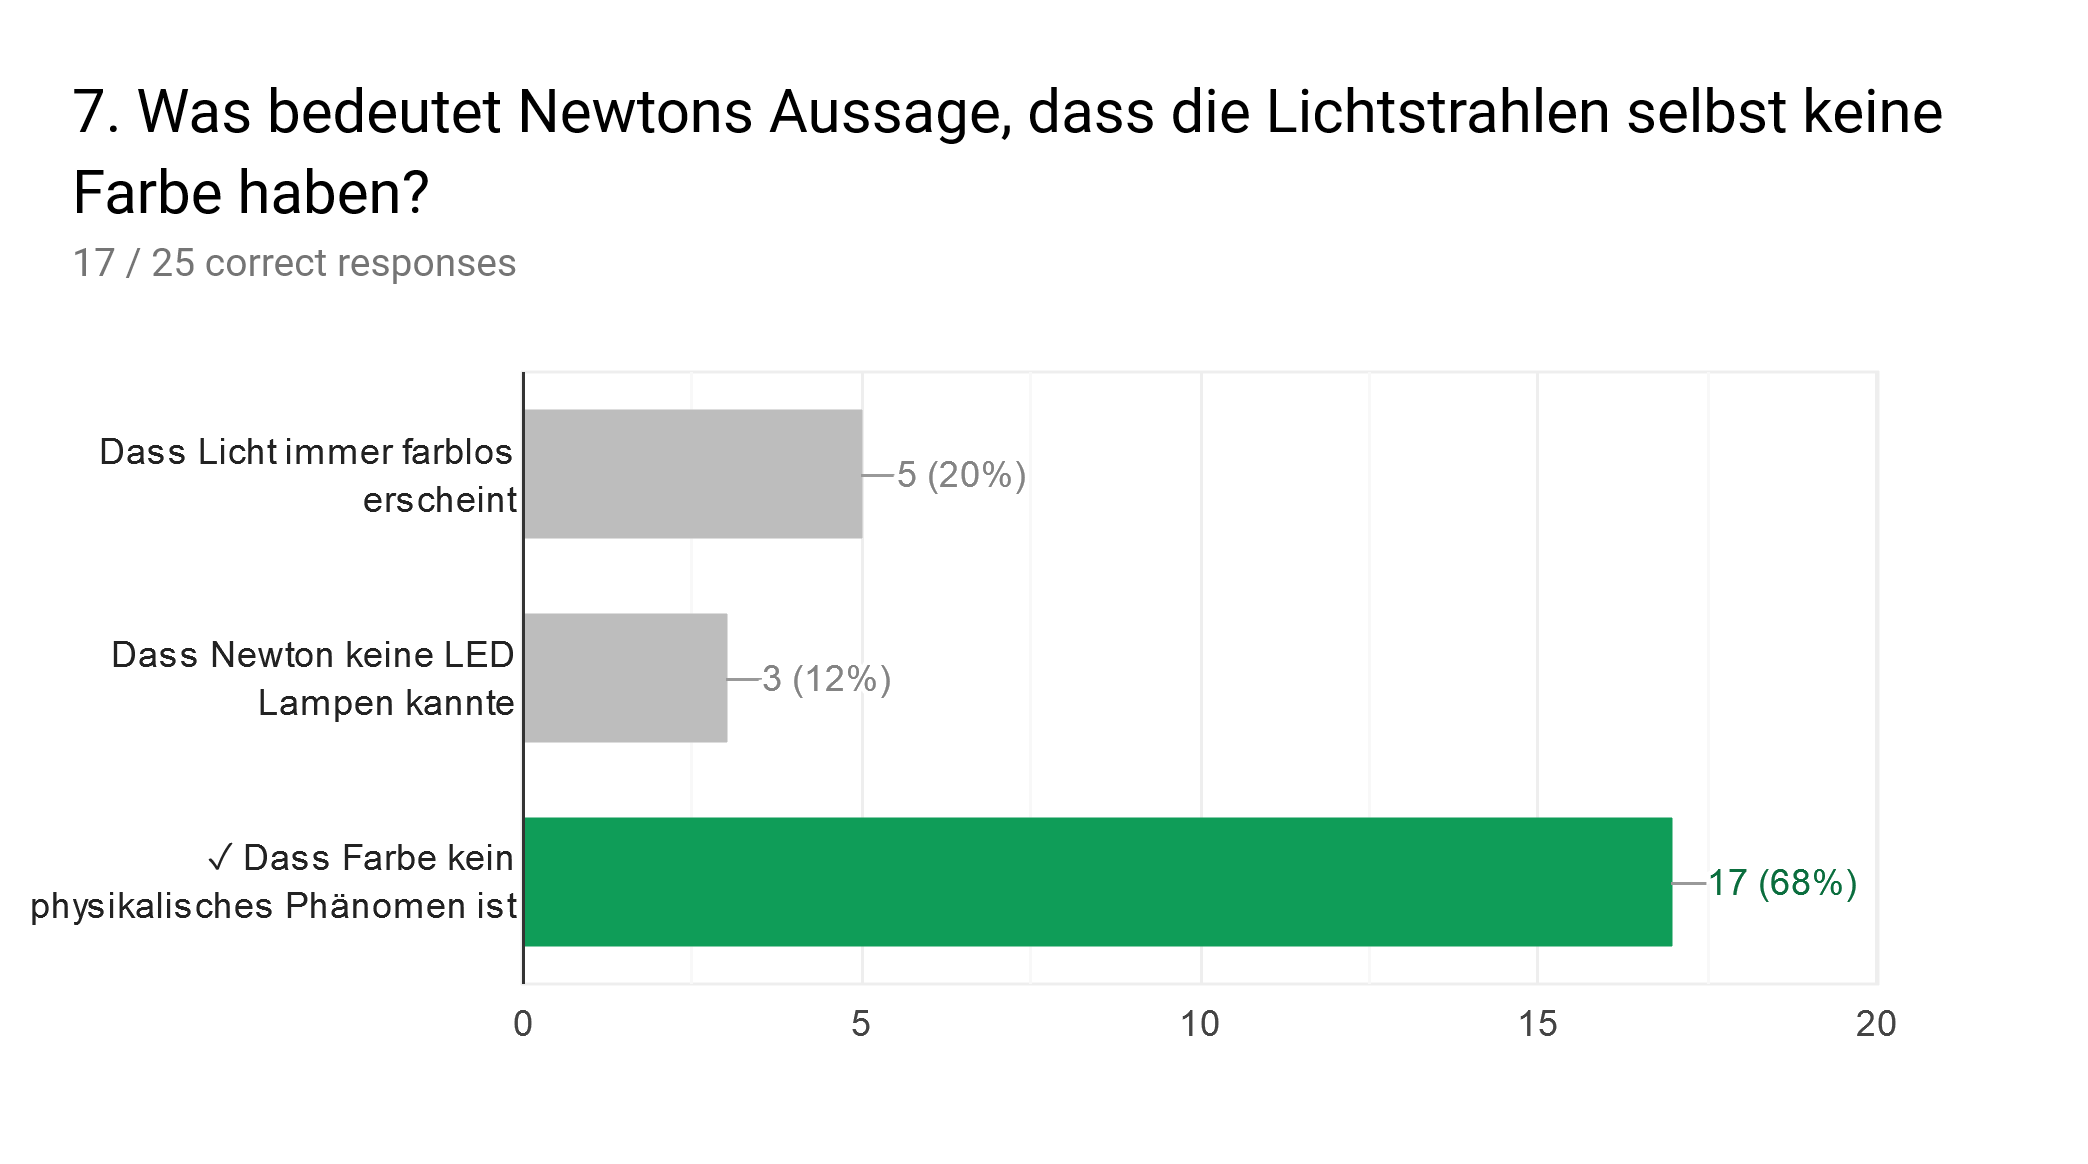 Forms response chart. Question title: 7. Was bedeutet Newtons Aussage, dass die Lichtstrahlen selbst keine Farbe haben?. Number of responses: 17 / 25 correct responses.